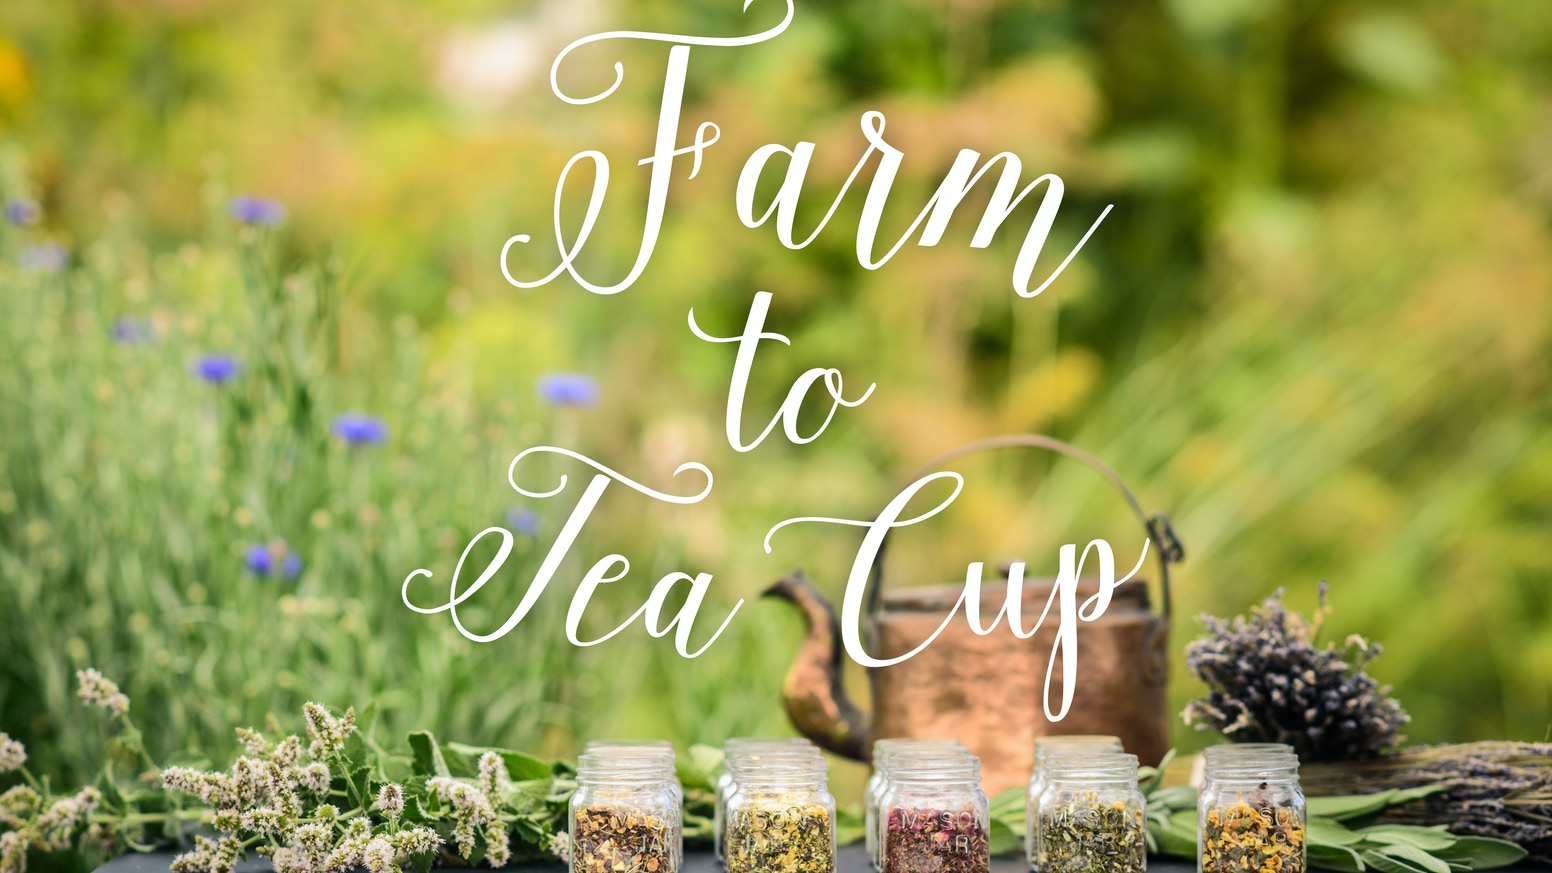 Farm To Tea Cup: Artisan organic tea handcrafted in the beautiful Pacific Northwest using local ingredients.